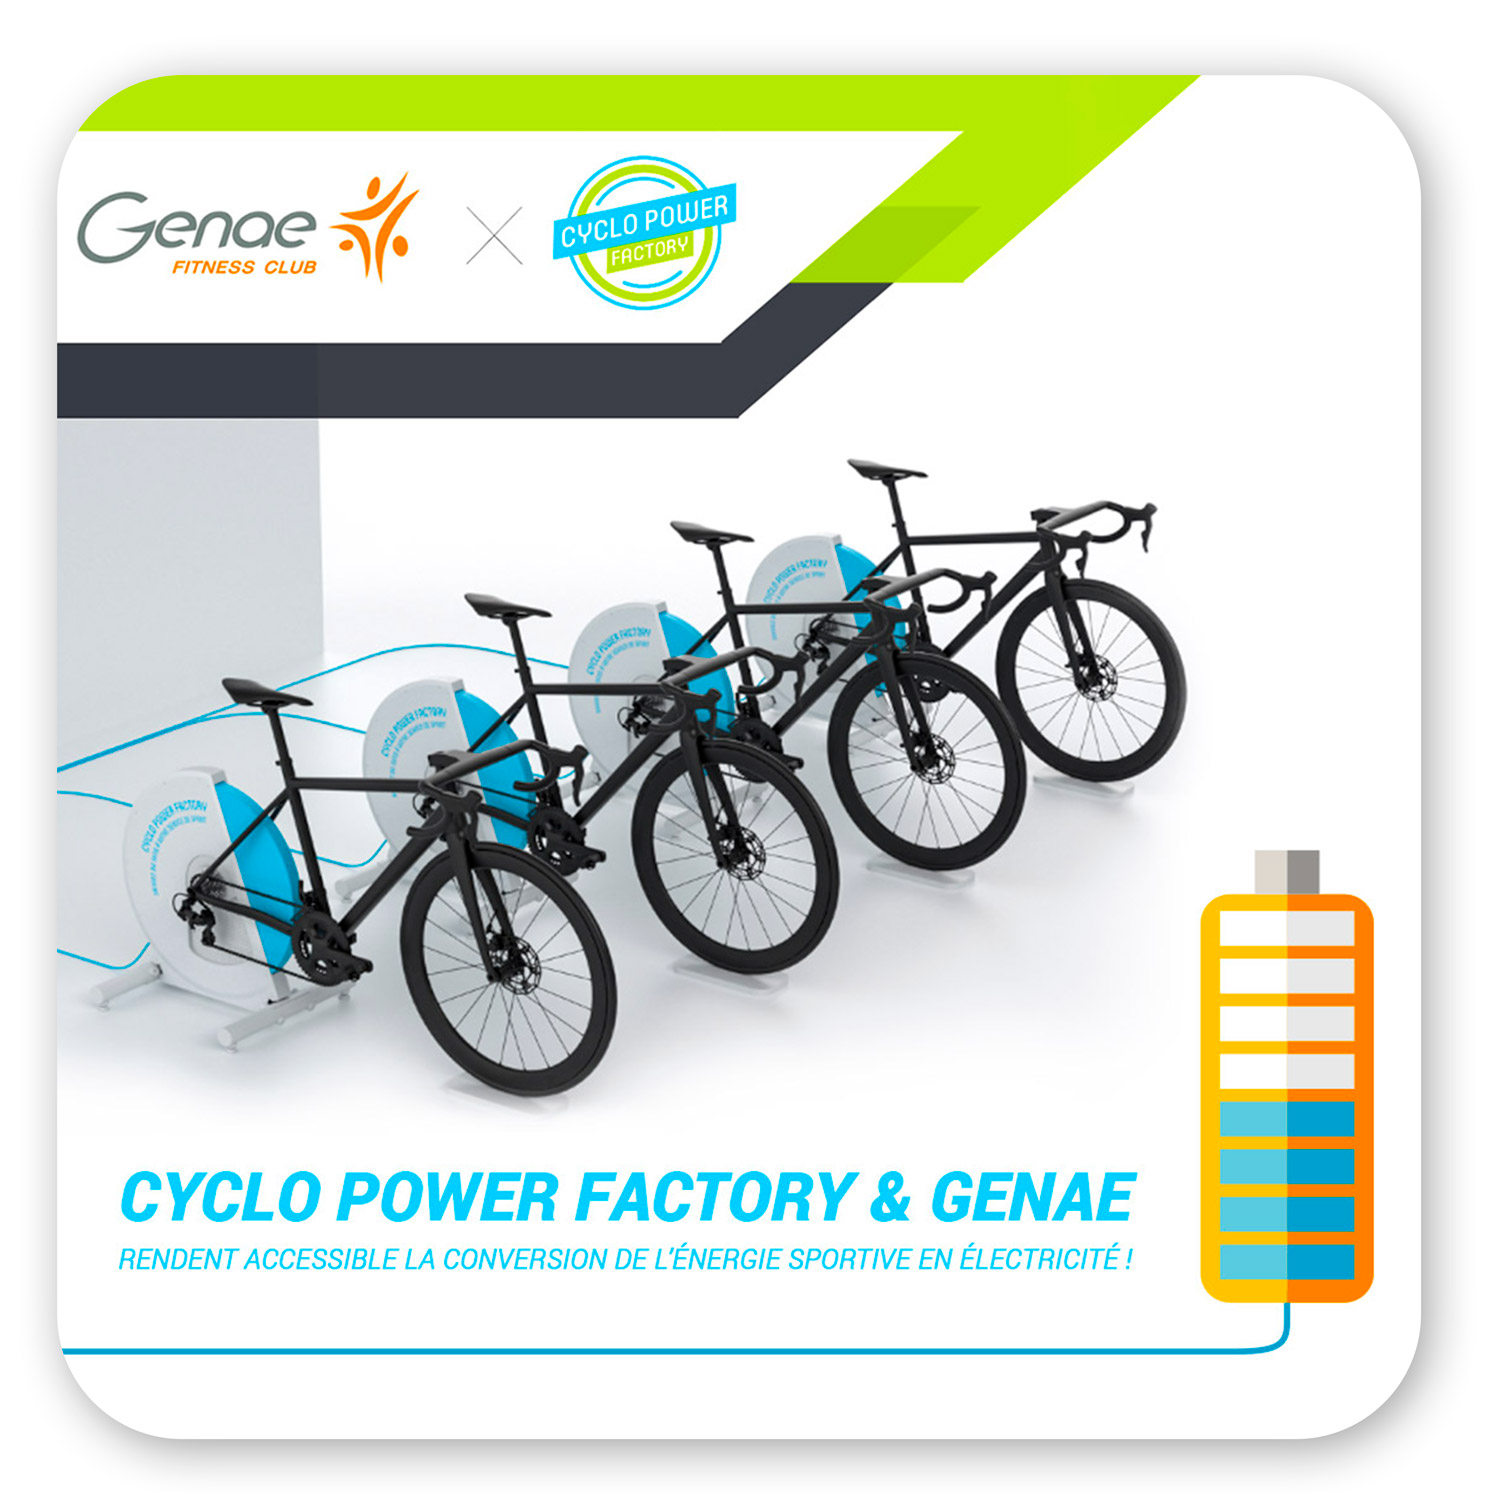 cyclo power factory